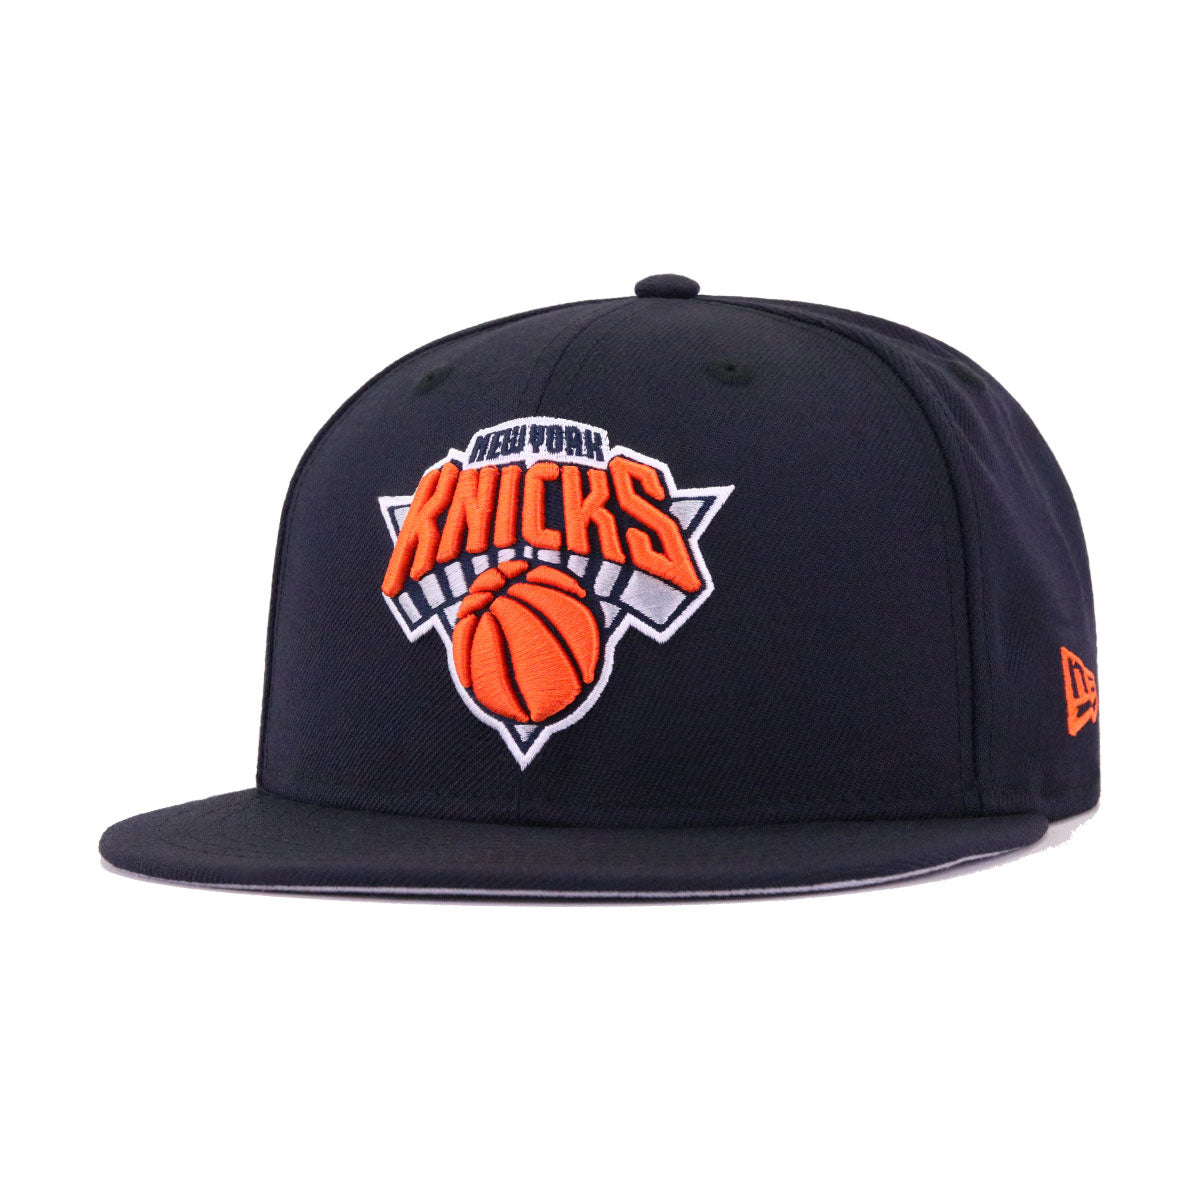 New York Knicks Navy New Era 9Fifty Snapback